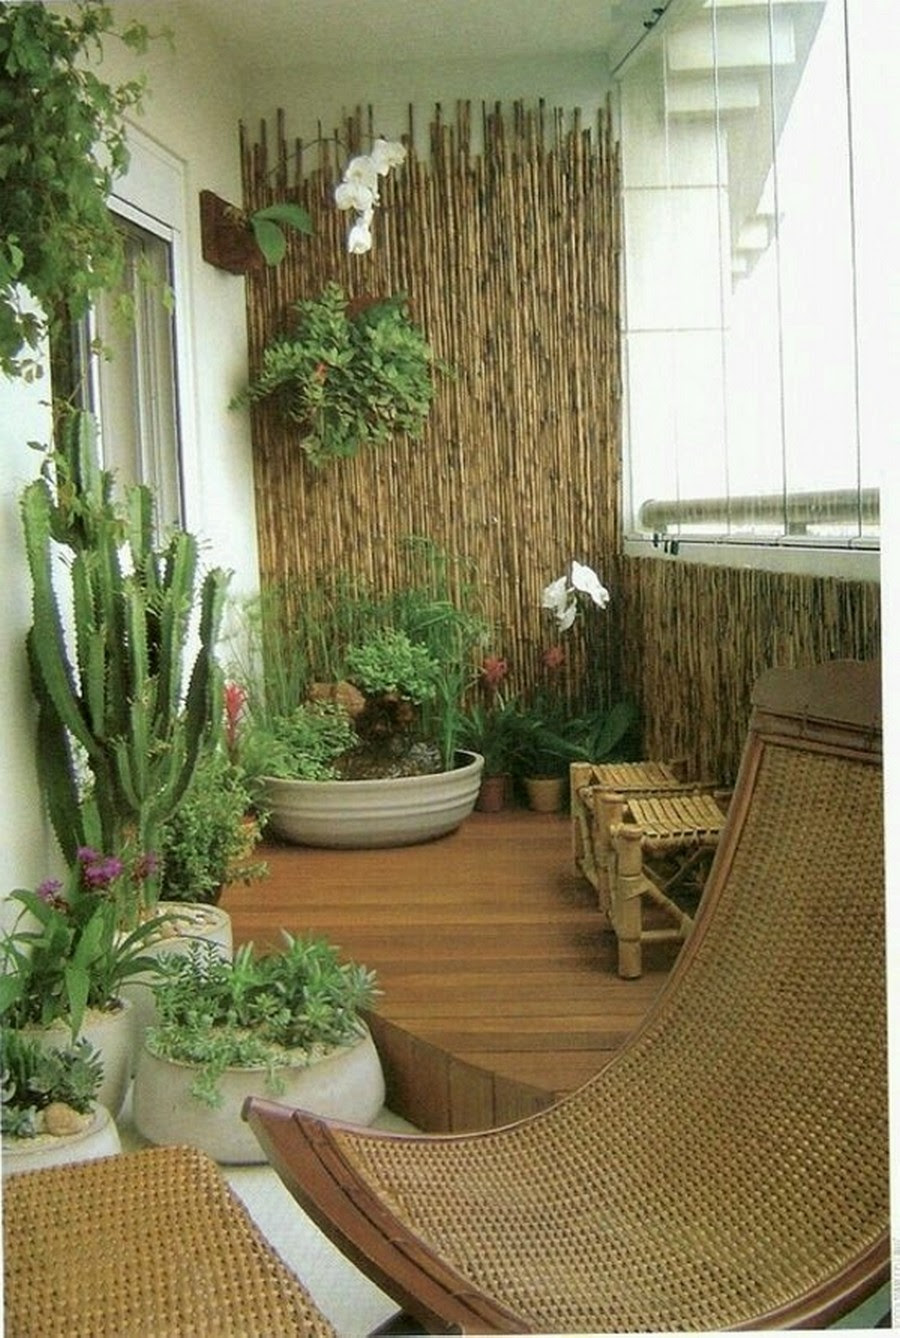 21 Small Balcony Garden Ideas That You Must Try – PlantDecors Blog